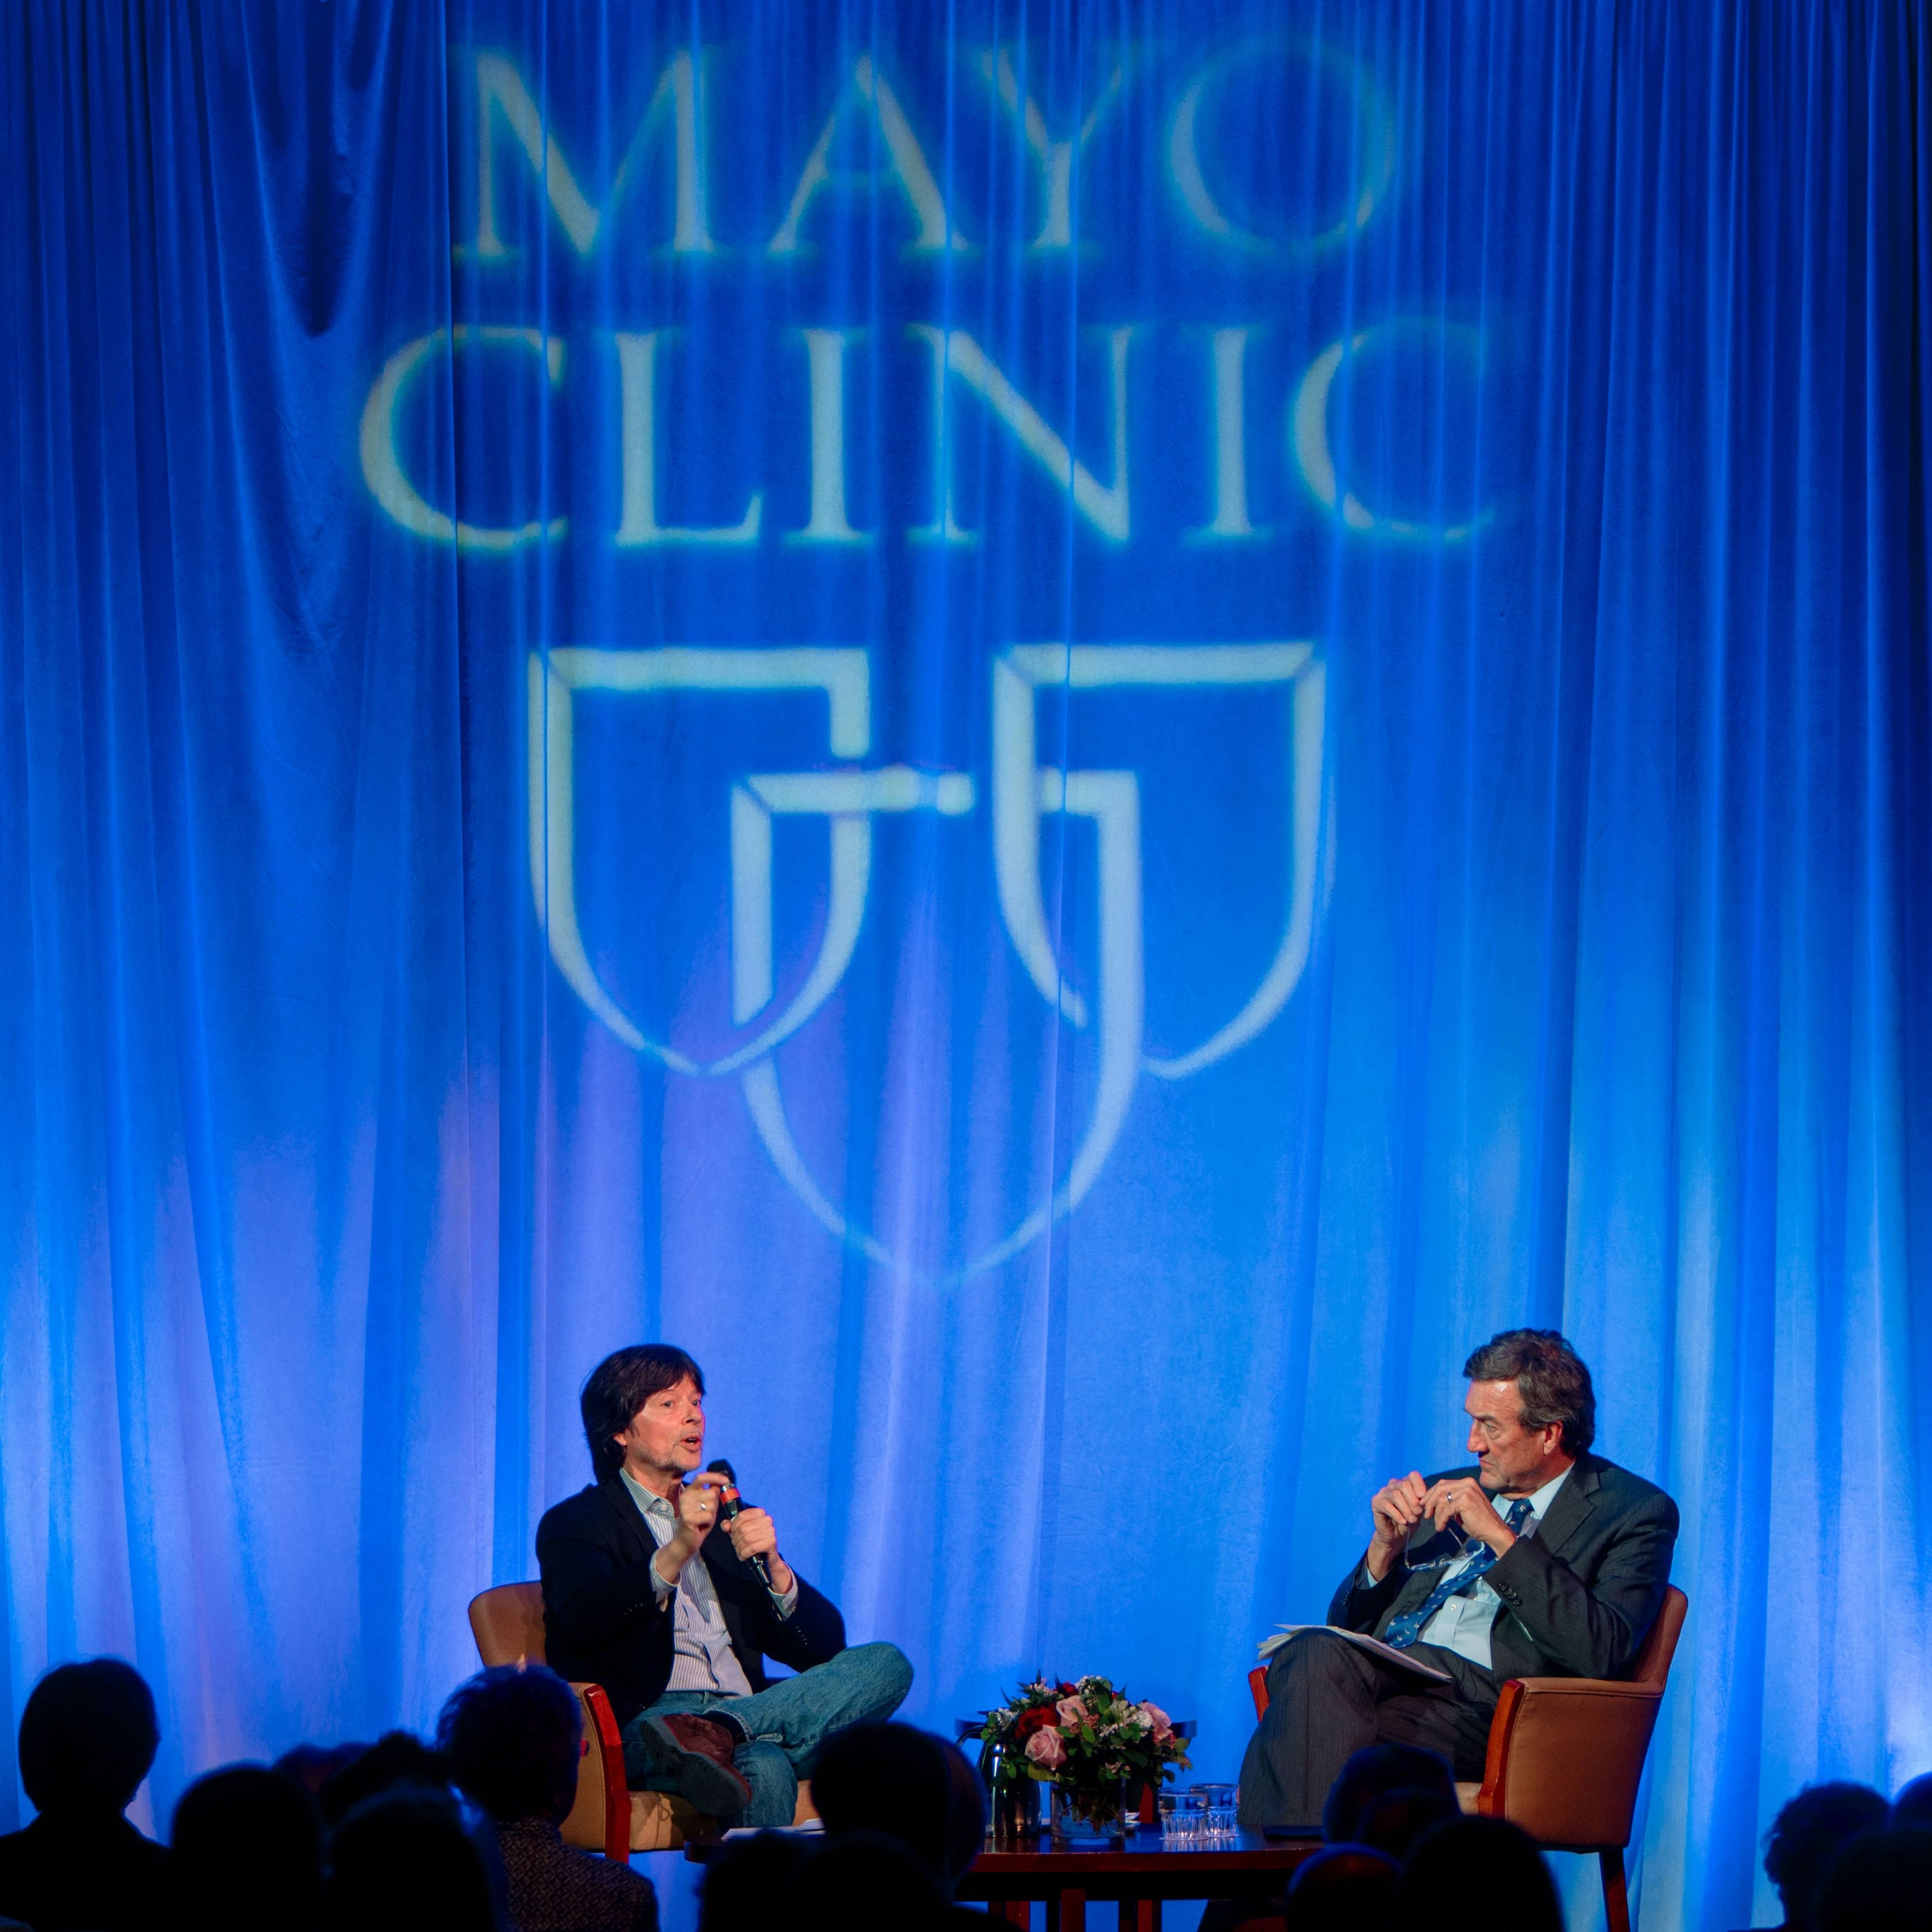 Photo of two males, Ken Burns and Dr. John Noseworthy on stage with a blue backdrop with the Mayo Clinic Logo of three shields